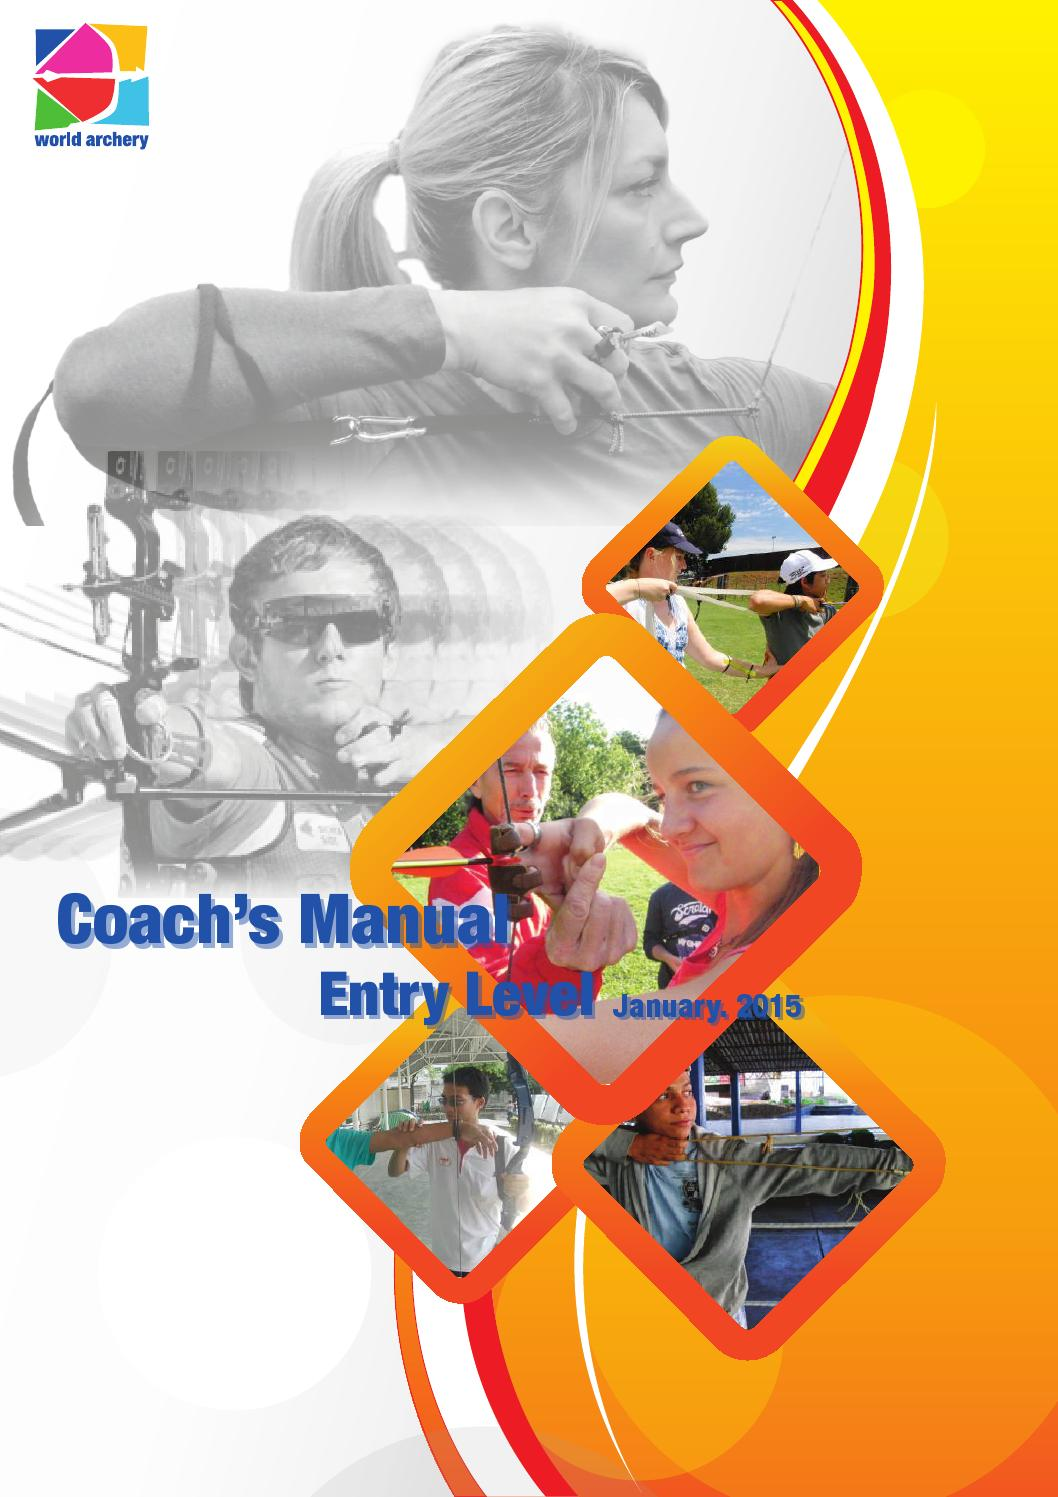 World Archery Coach's Manual: Entry Level by World Archery